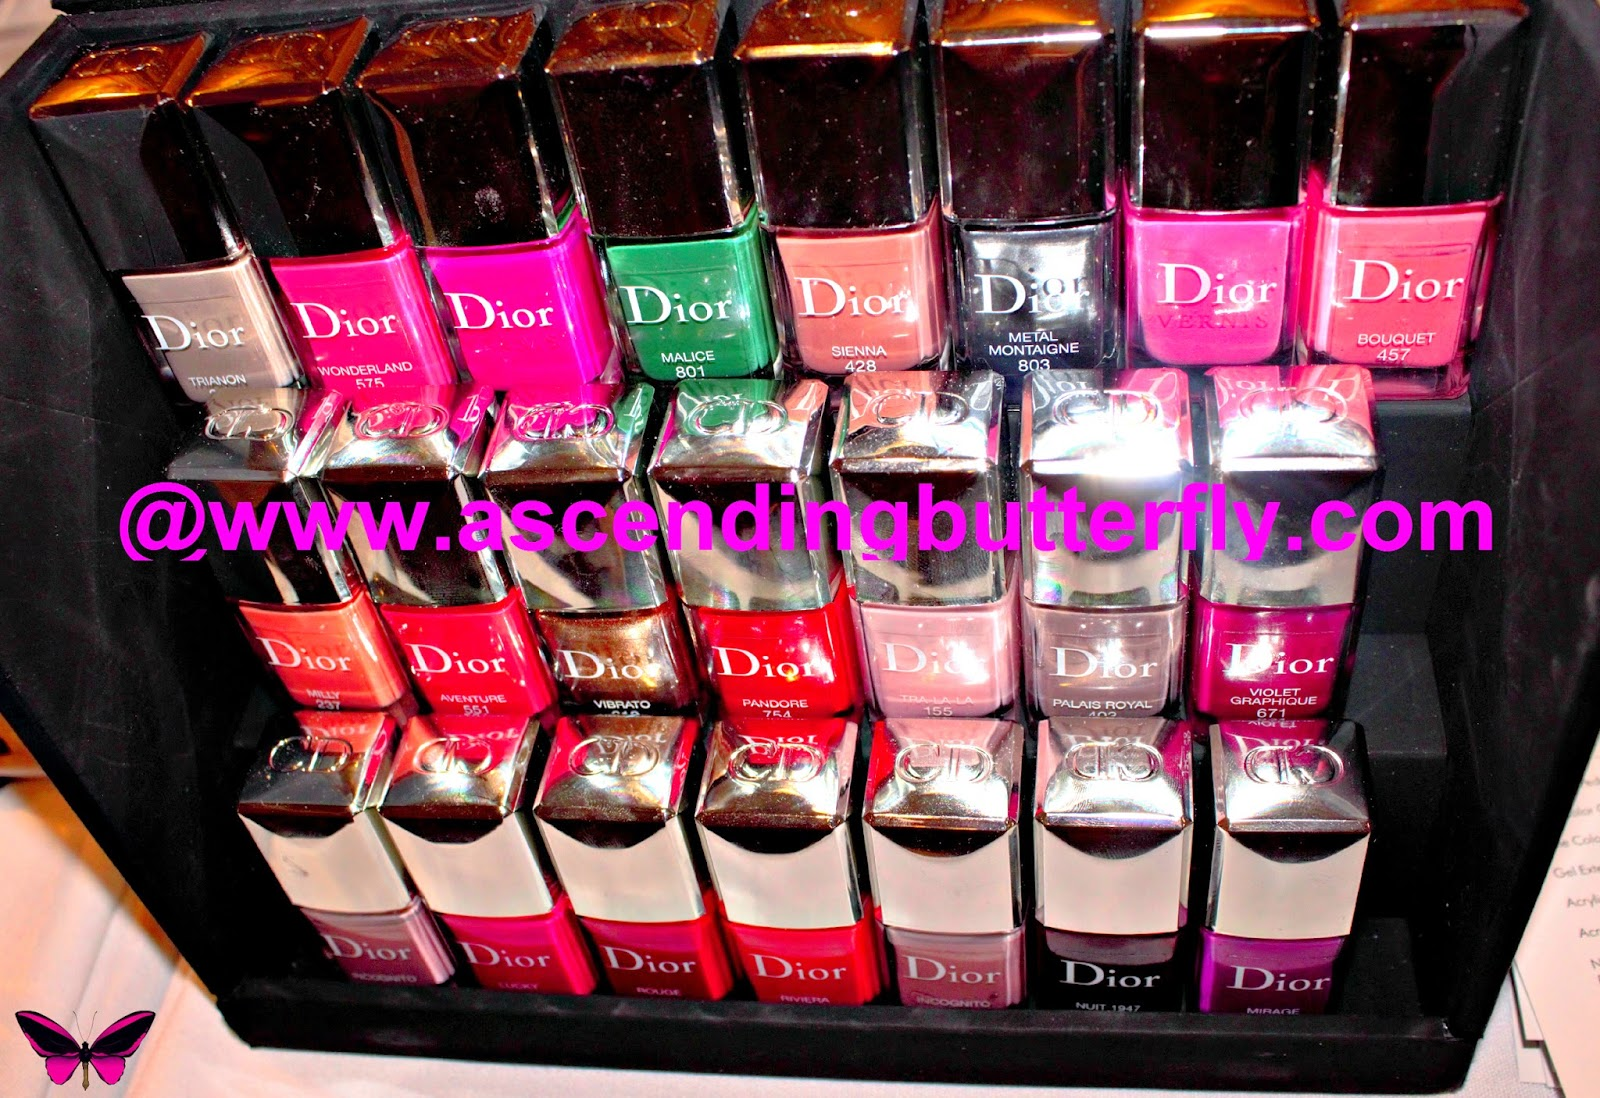 Christian Dior Nail Polish on display at Getting Gorgeous 2014